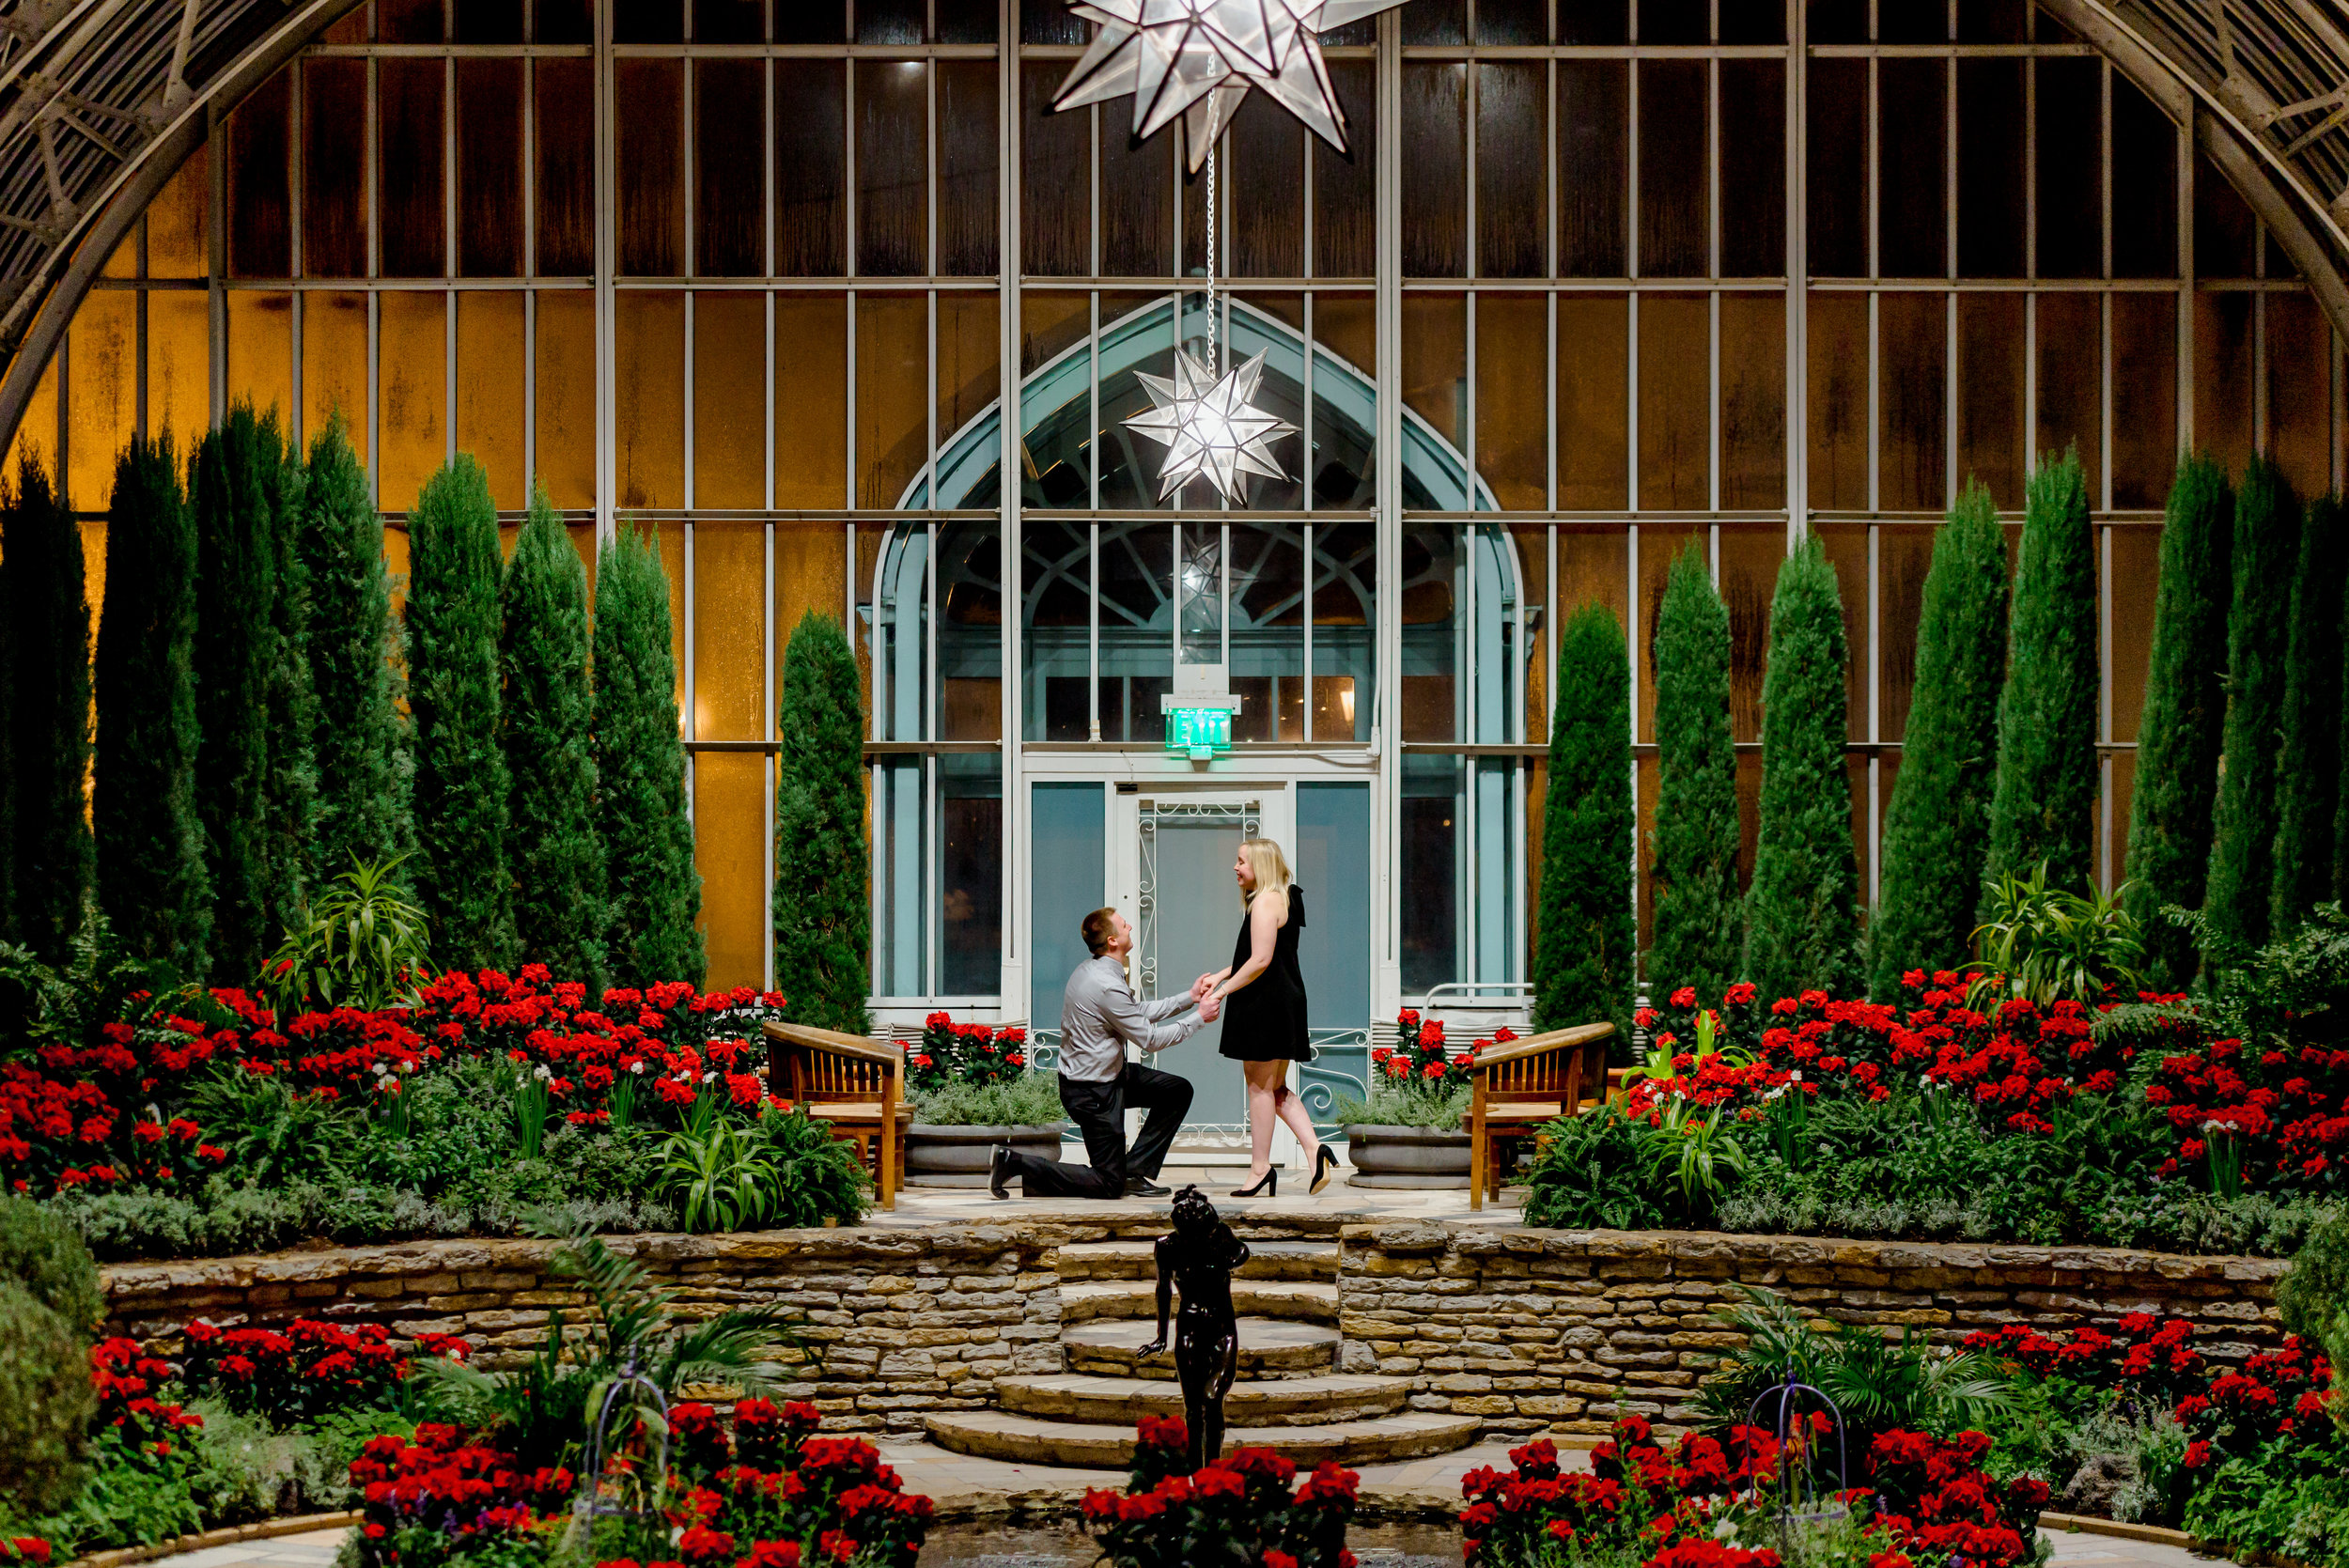 Romantic Proposal Locations in MN - Como Conservatory in St. Paul - Holiday Proposal Photographer MN